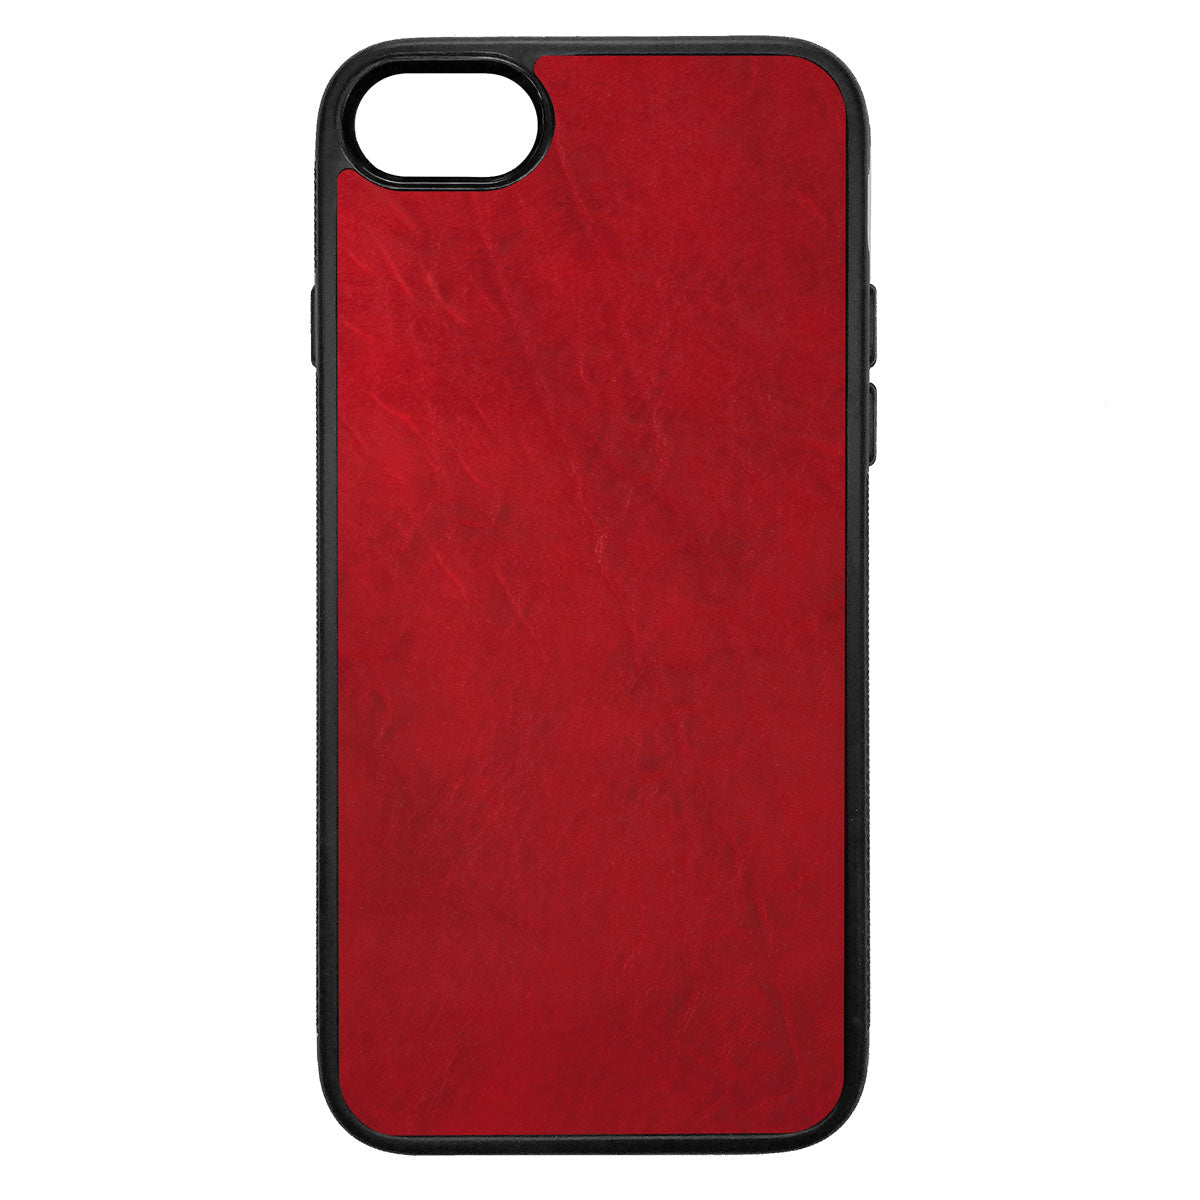 Crimson iPhone 7 Leather Case